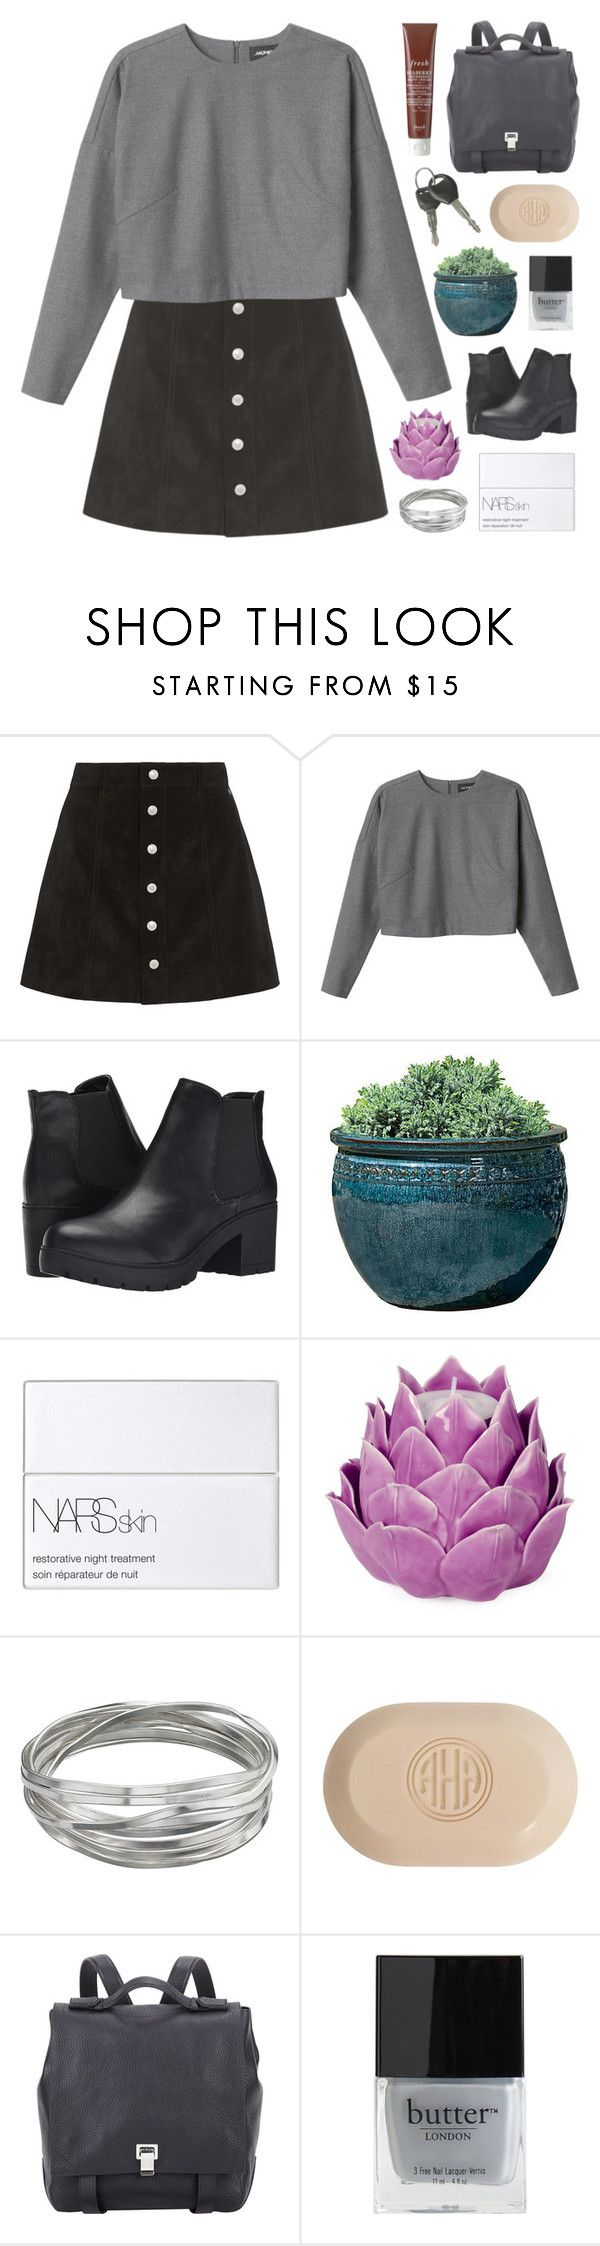 """RUNNING WILD"" by f-4bulous ❤ liked on Polyvore featuring AG Adriano…"